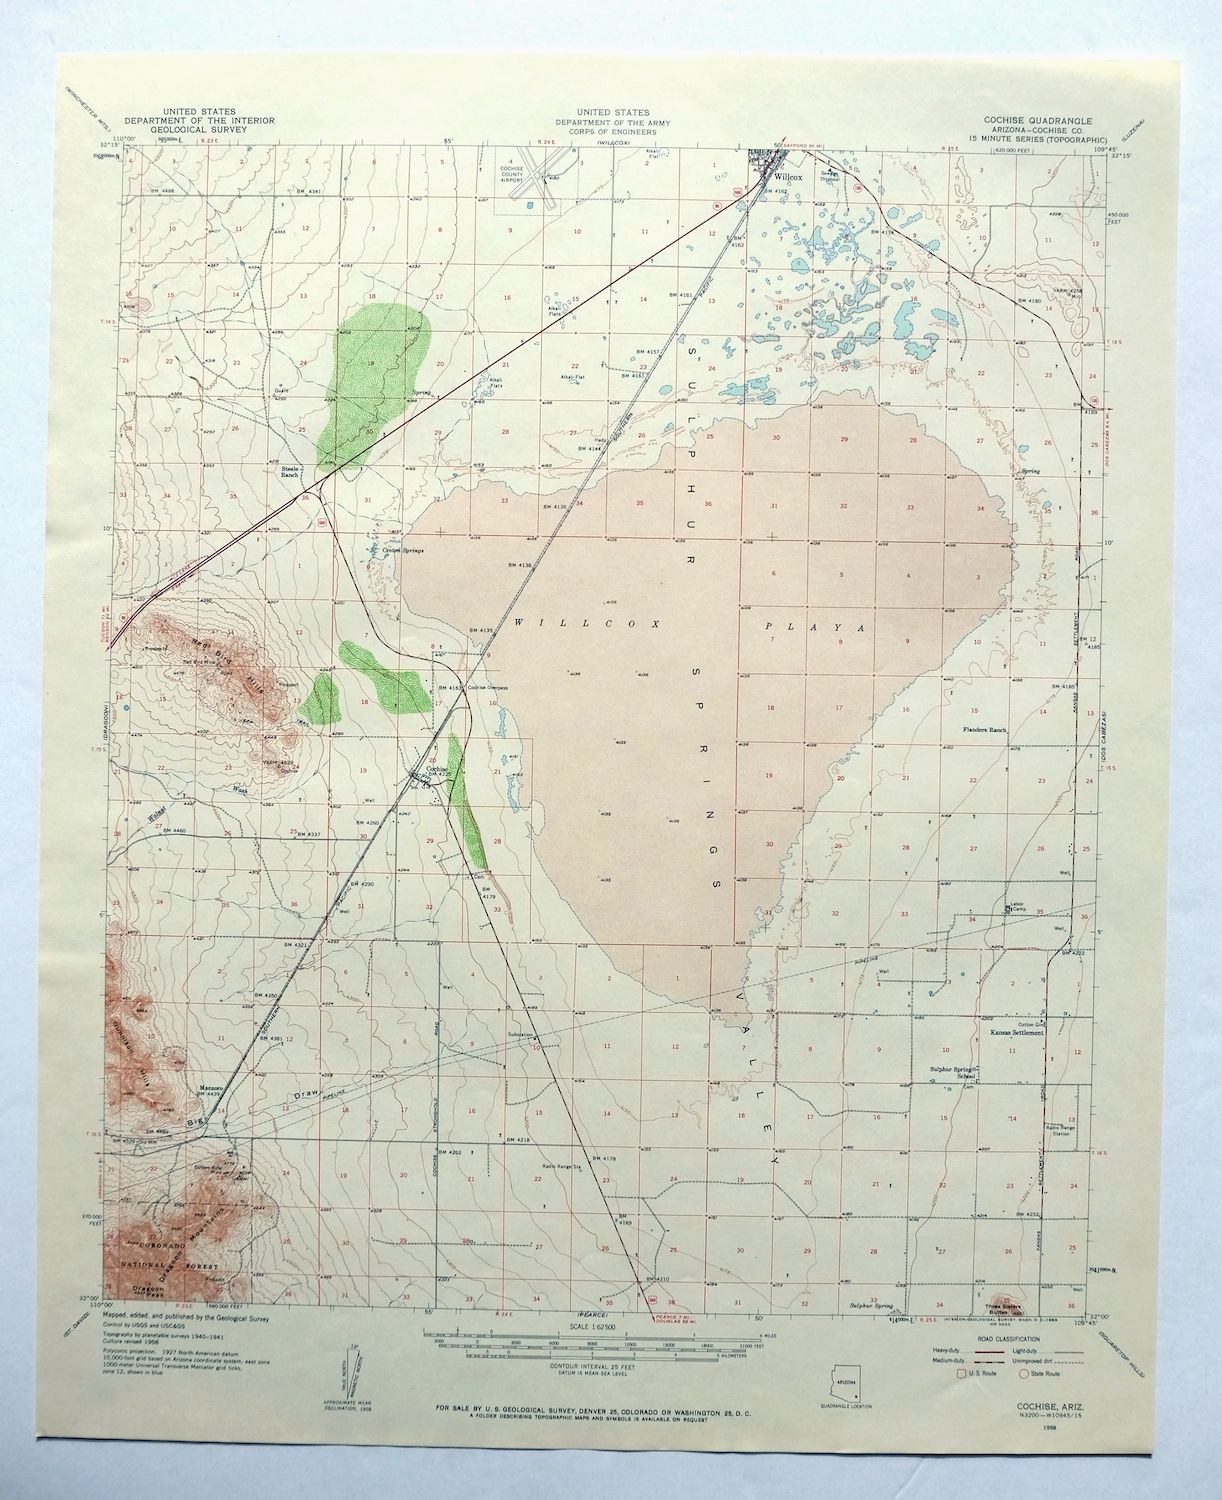 Topographic Map Arizona.Details About Cochise Arizona Vintage Usgs Topo Map 1958 Willcox Dragoon Mts Topographical